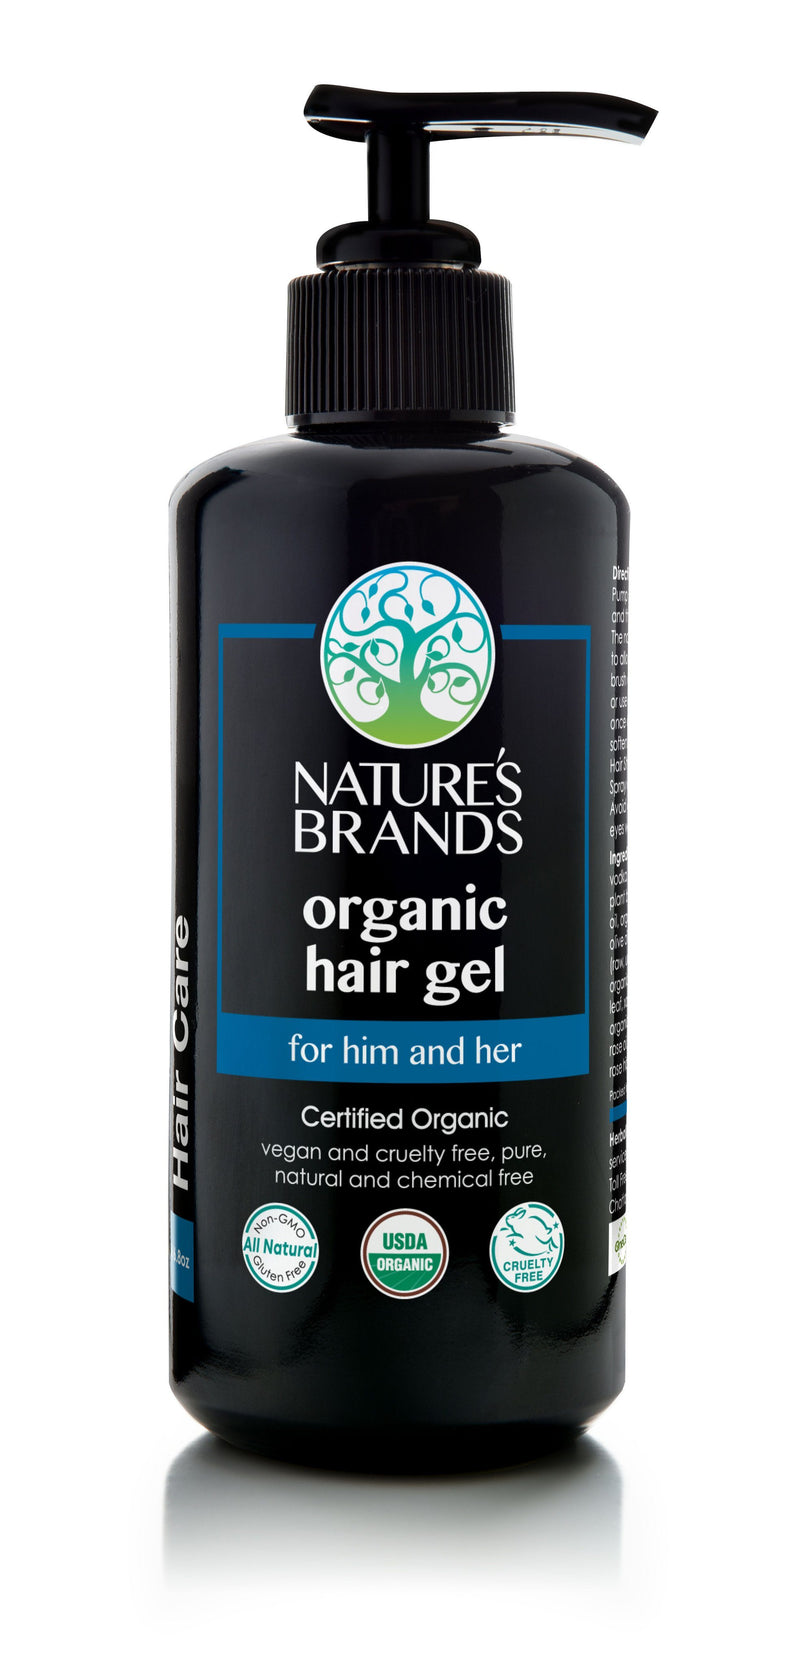 Herbal Choice Mari Organic Hair Gel - Herbal Choice Mari Organic Hair Gel - Glass Bottle (200ml/6.8oz)